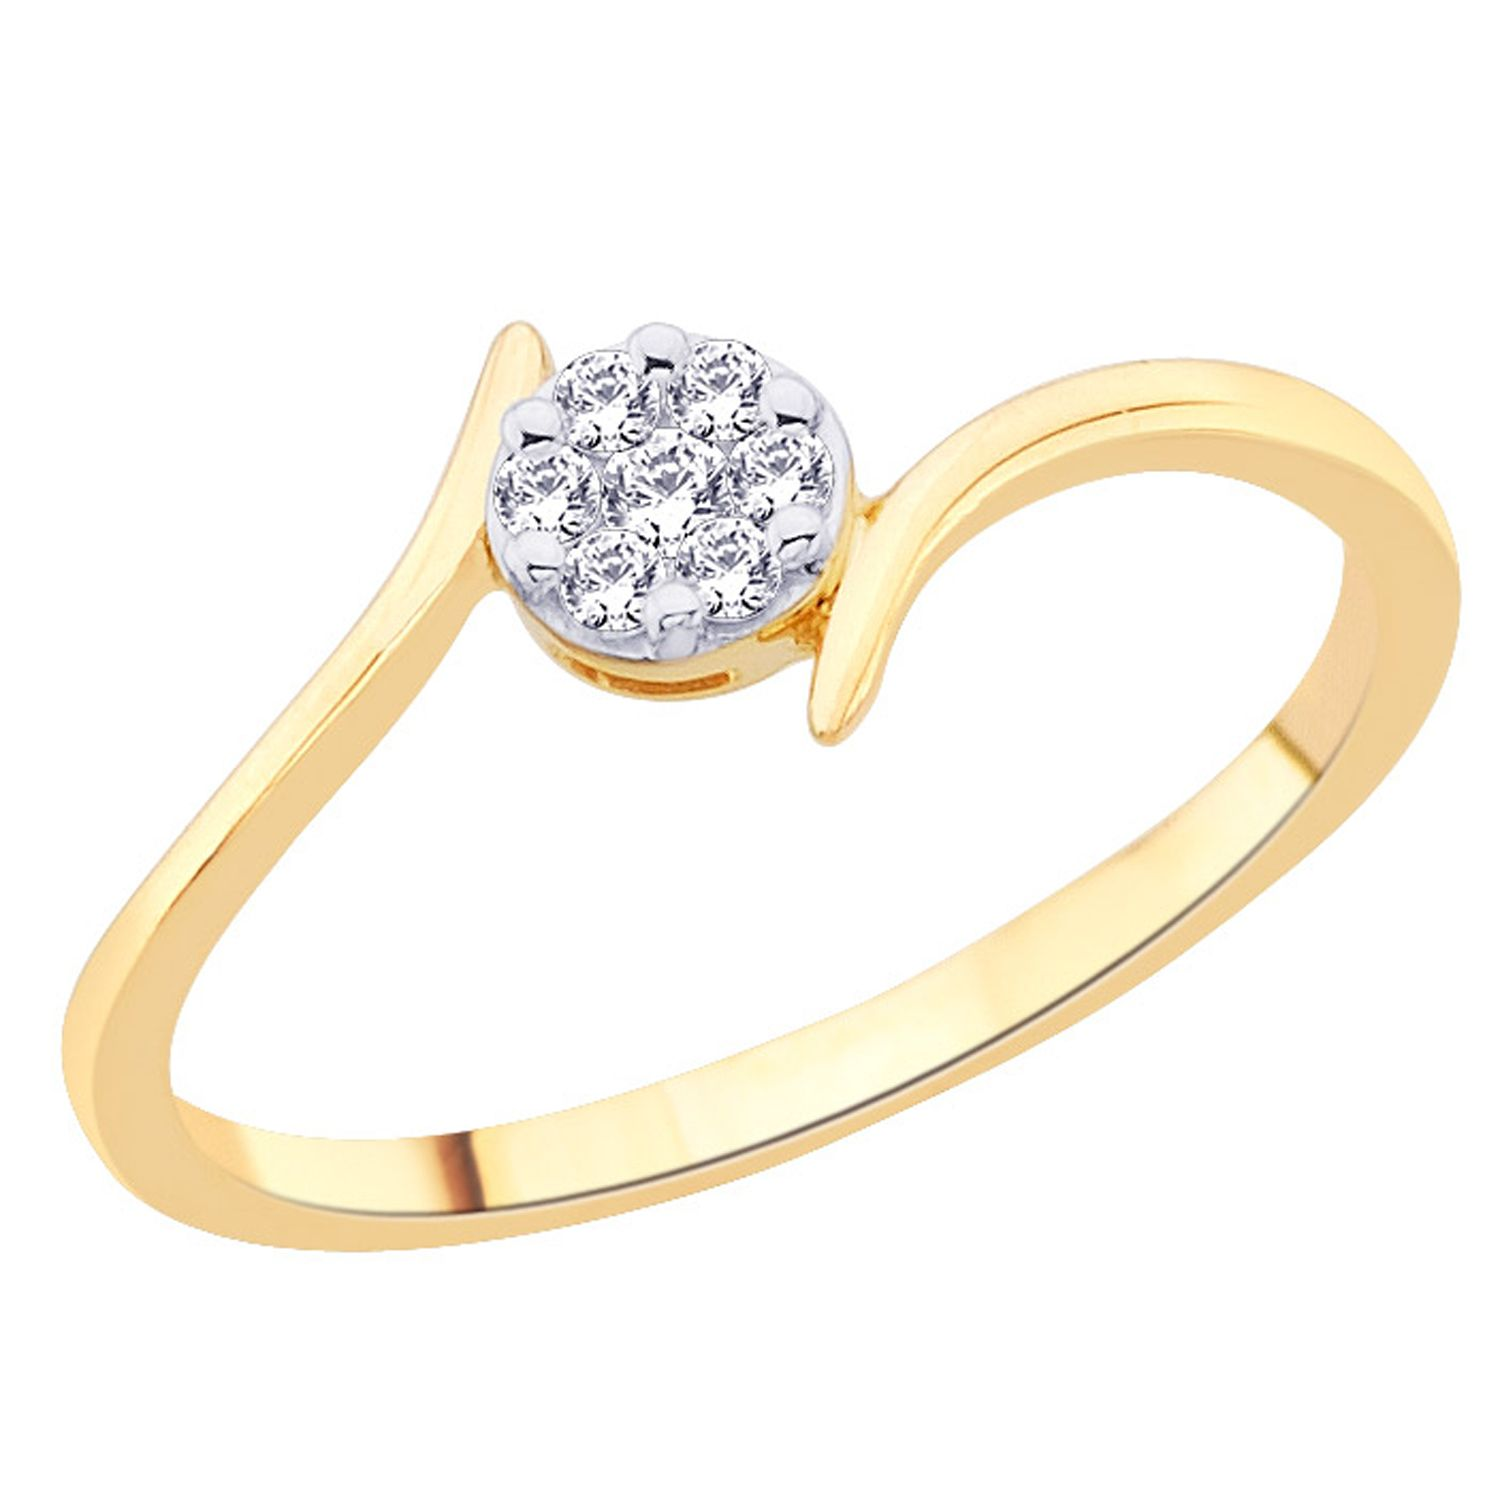 product category wedding occasion diamond ernest webstore gold rings material white jewellery l jones ring number